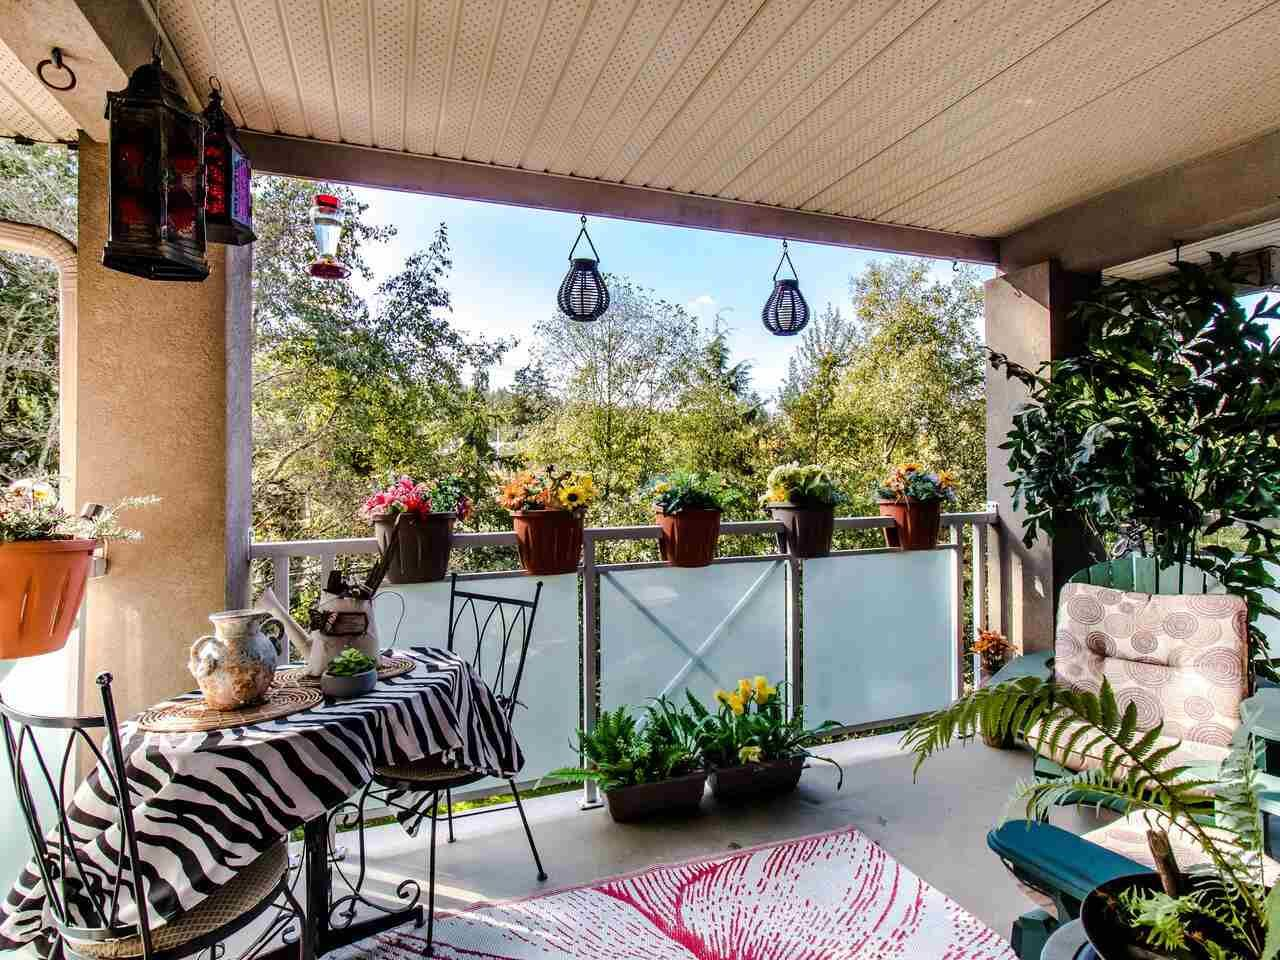 """Main Photo: 402 15140 29A Avenue in Surrey: King George Corridor Condo for sale in """"The Sands"""" (South Surrey White Rock)  : MLS®# R2510345"""